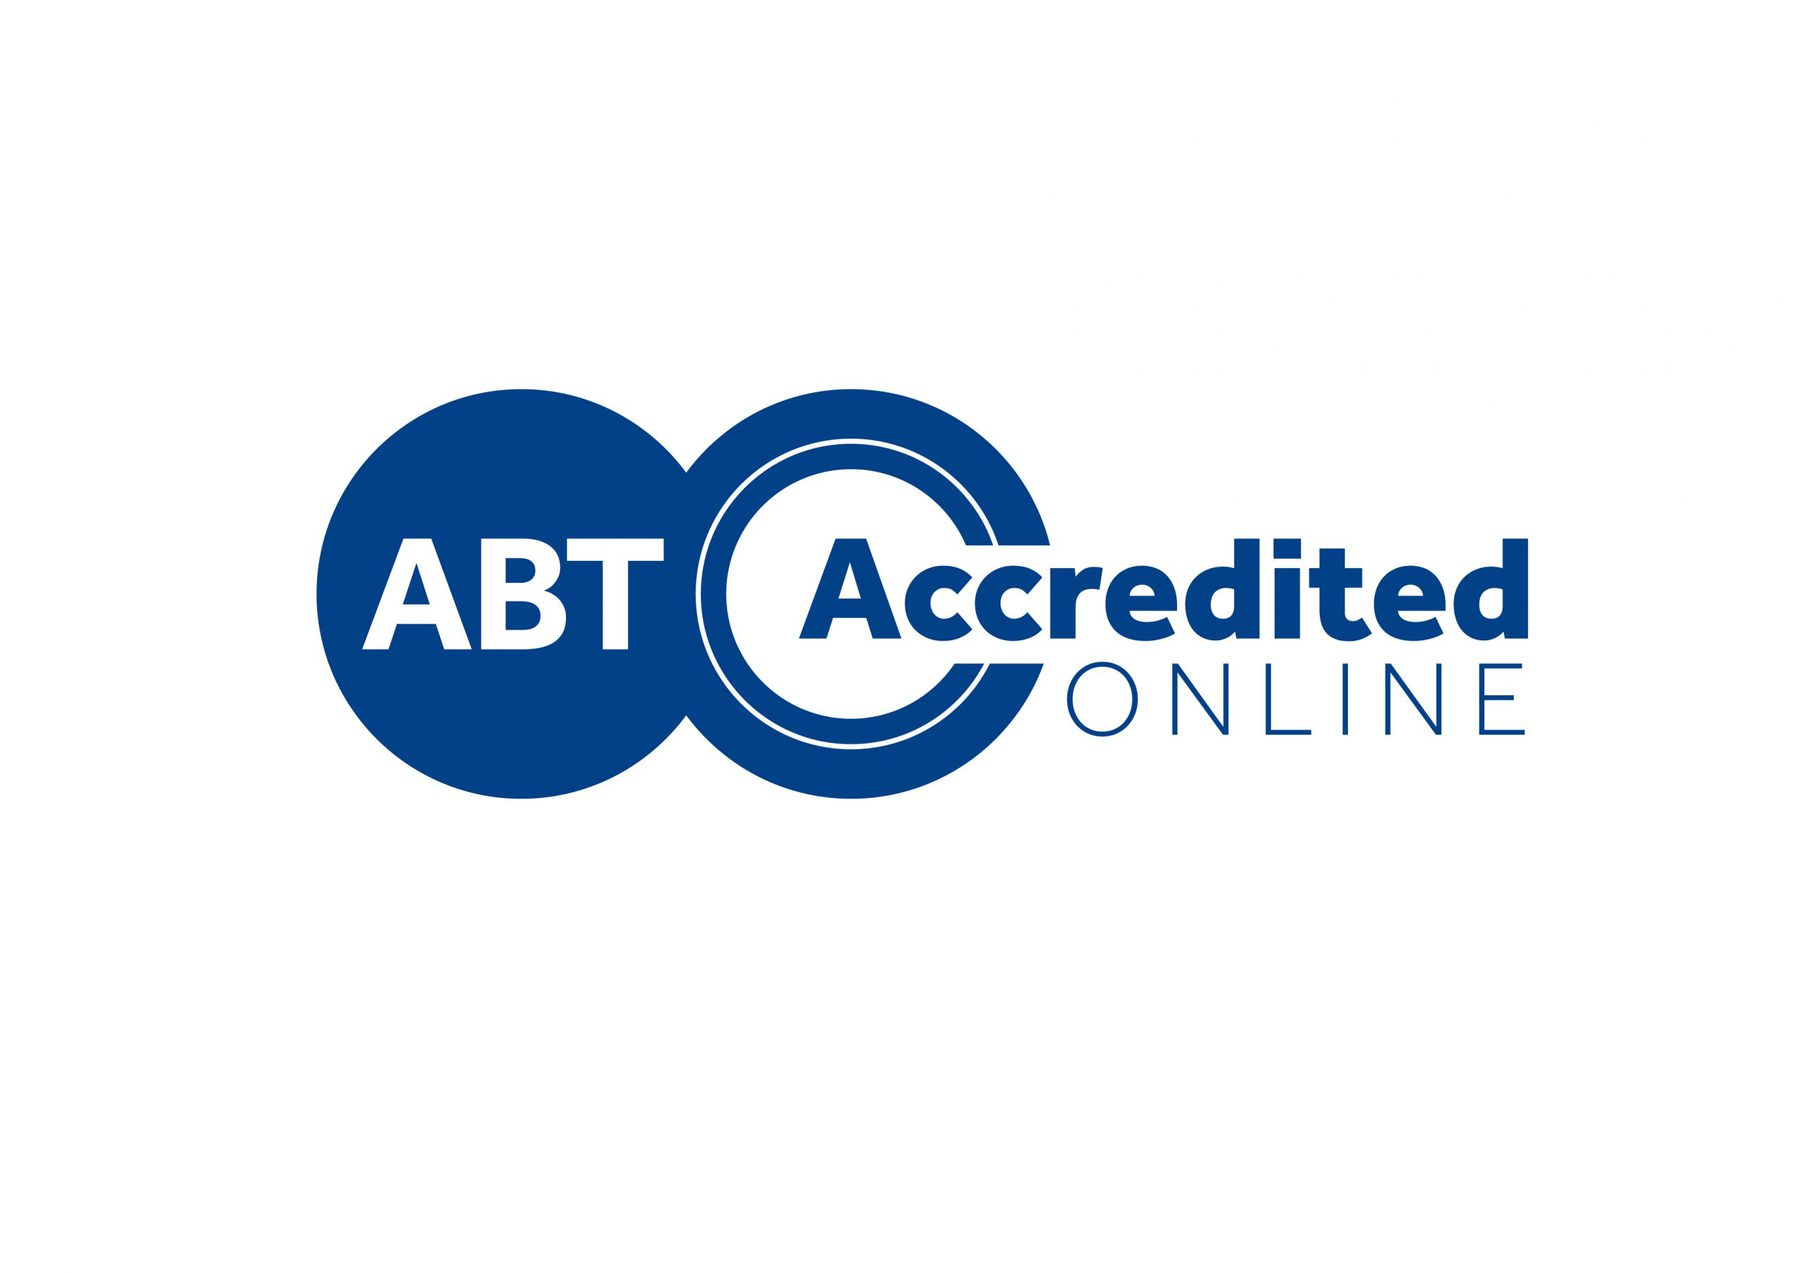 ABT Accredited Online Logo